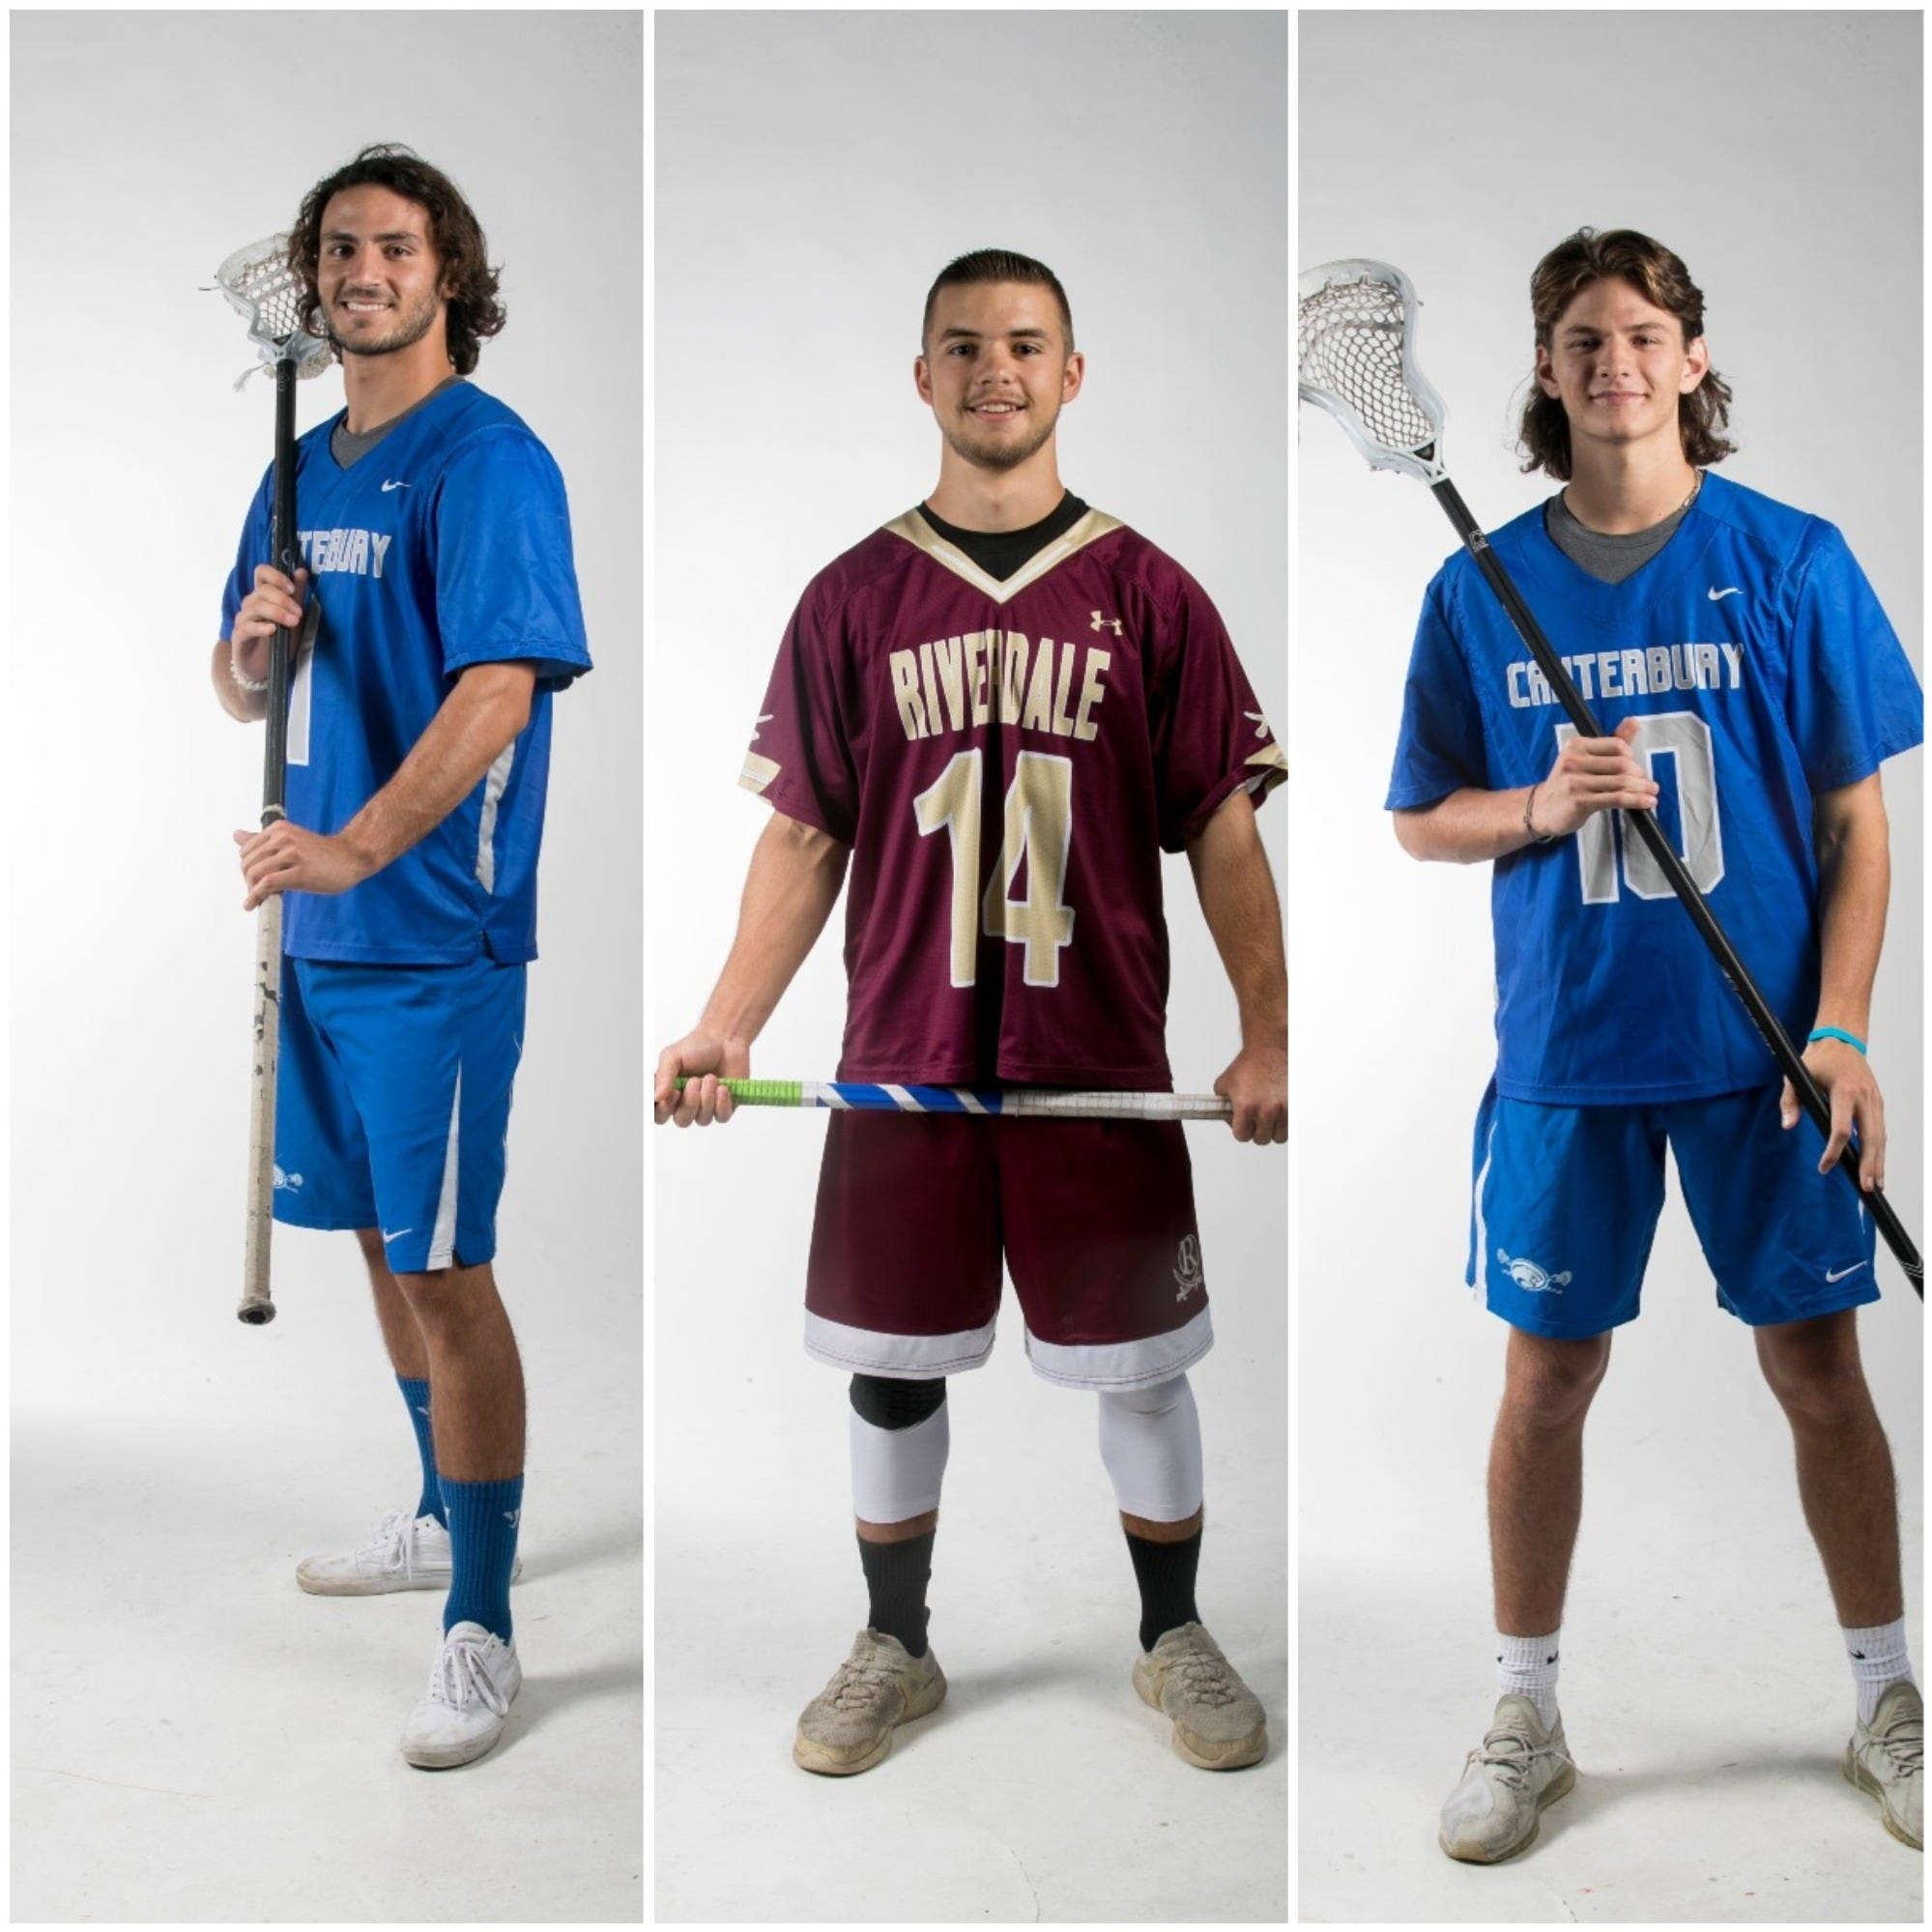 The 2019 News-Press All-Area Boys Lacrosse team